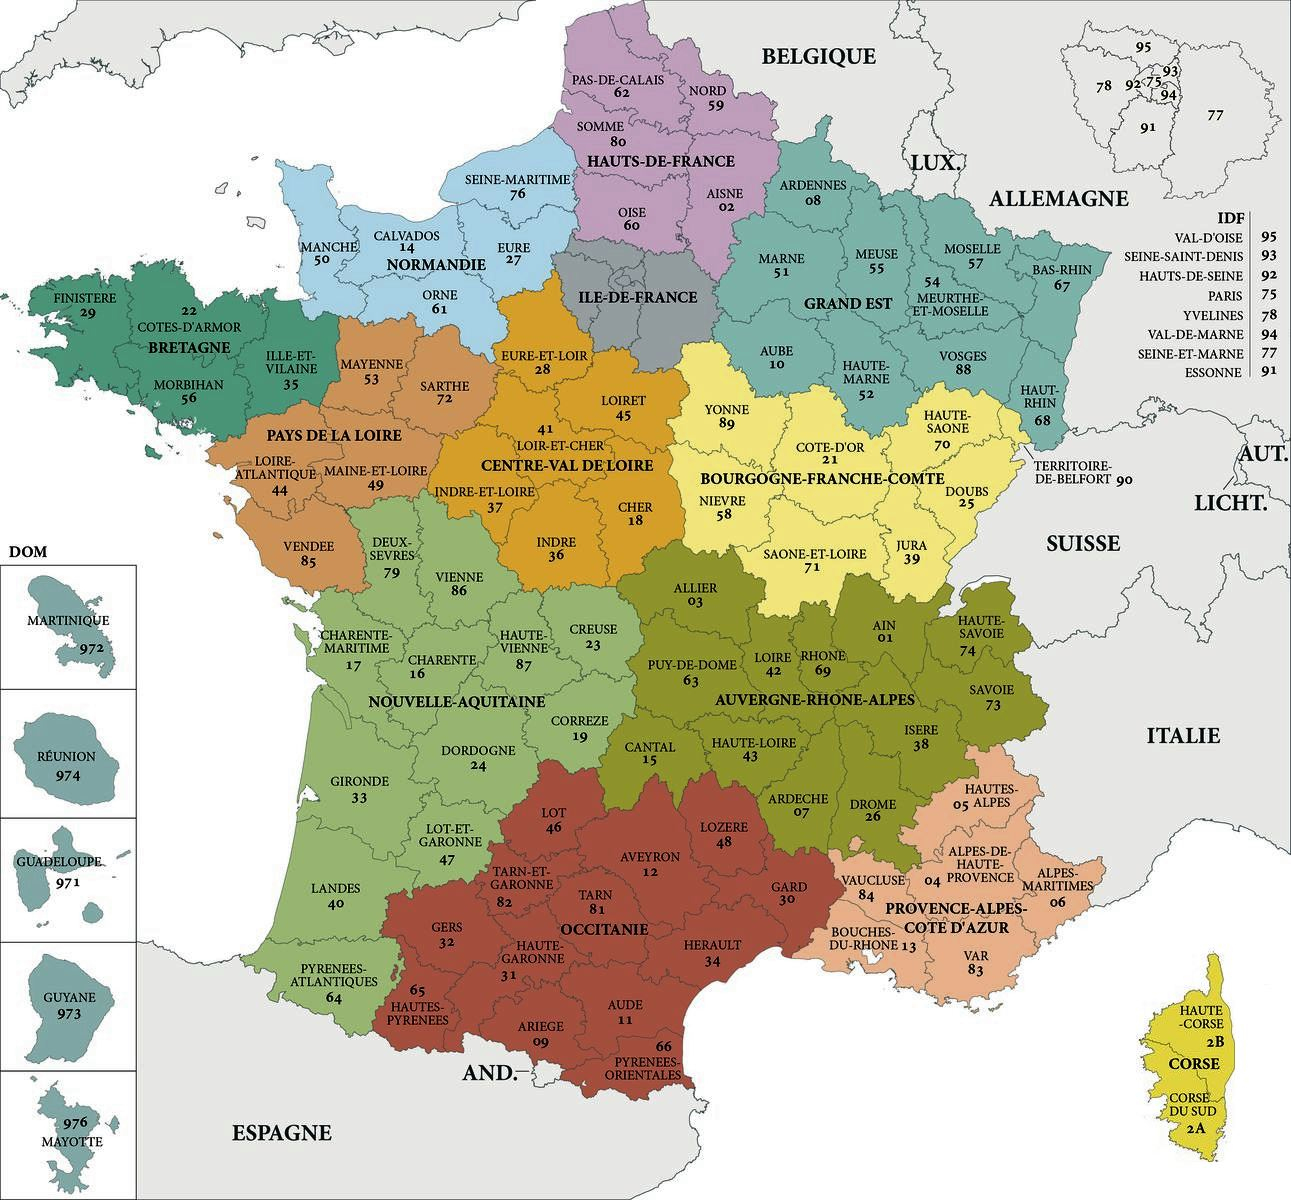 Carte De France Departements : Carte Des Départements De France encequiconcerne Carte De France Departement À Imprimer